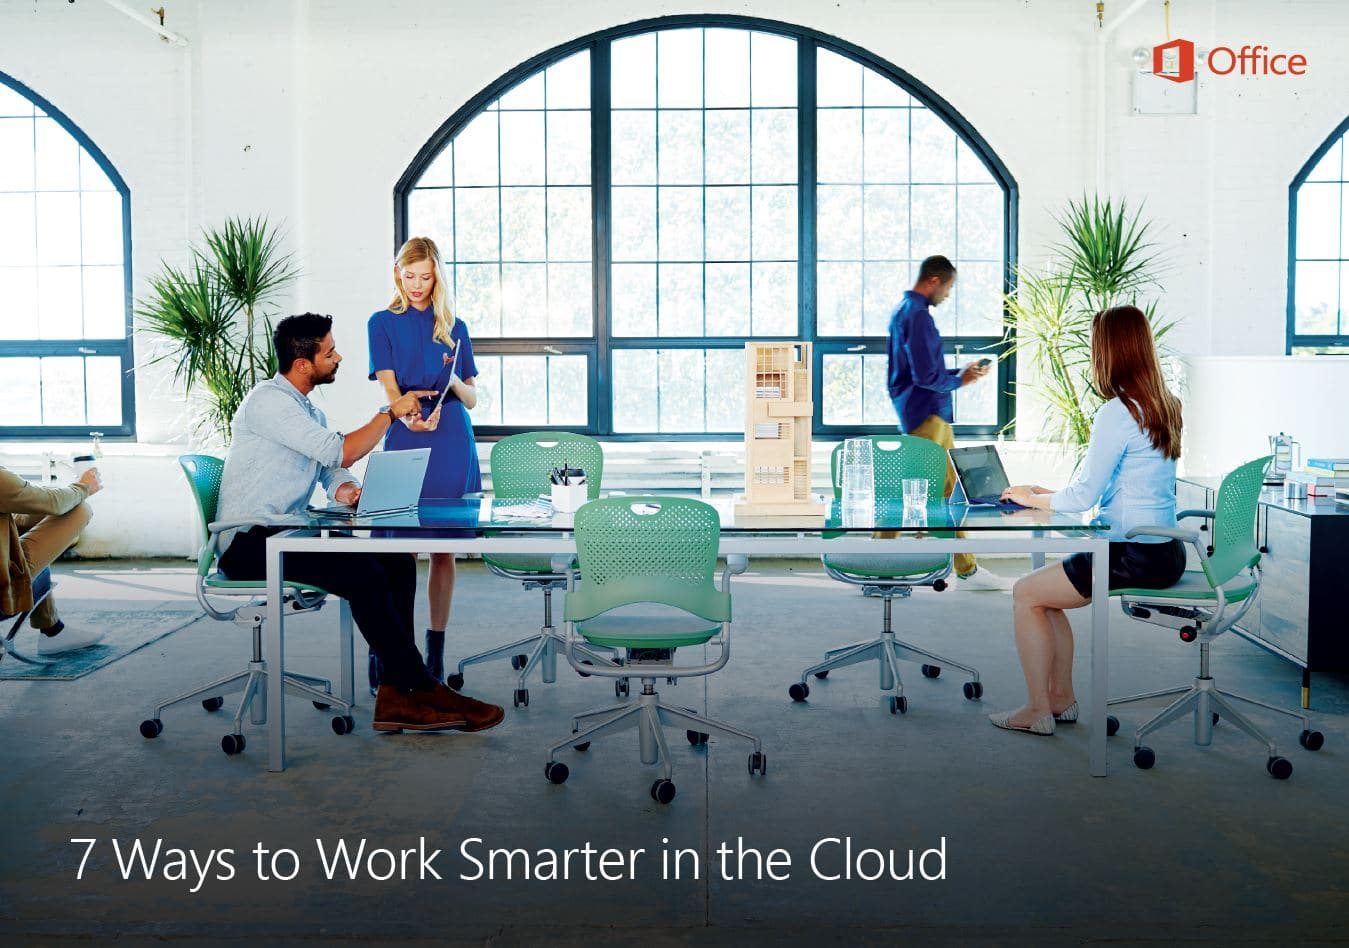 Office 365 - 7 Ways to Work Better in the Cloud eBook (image 1)